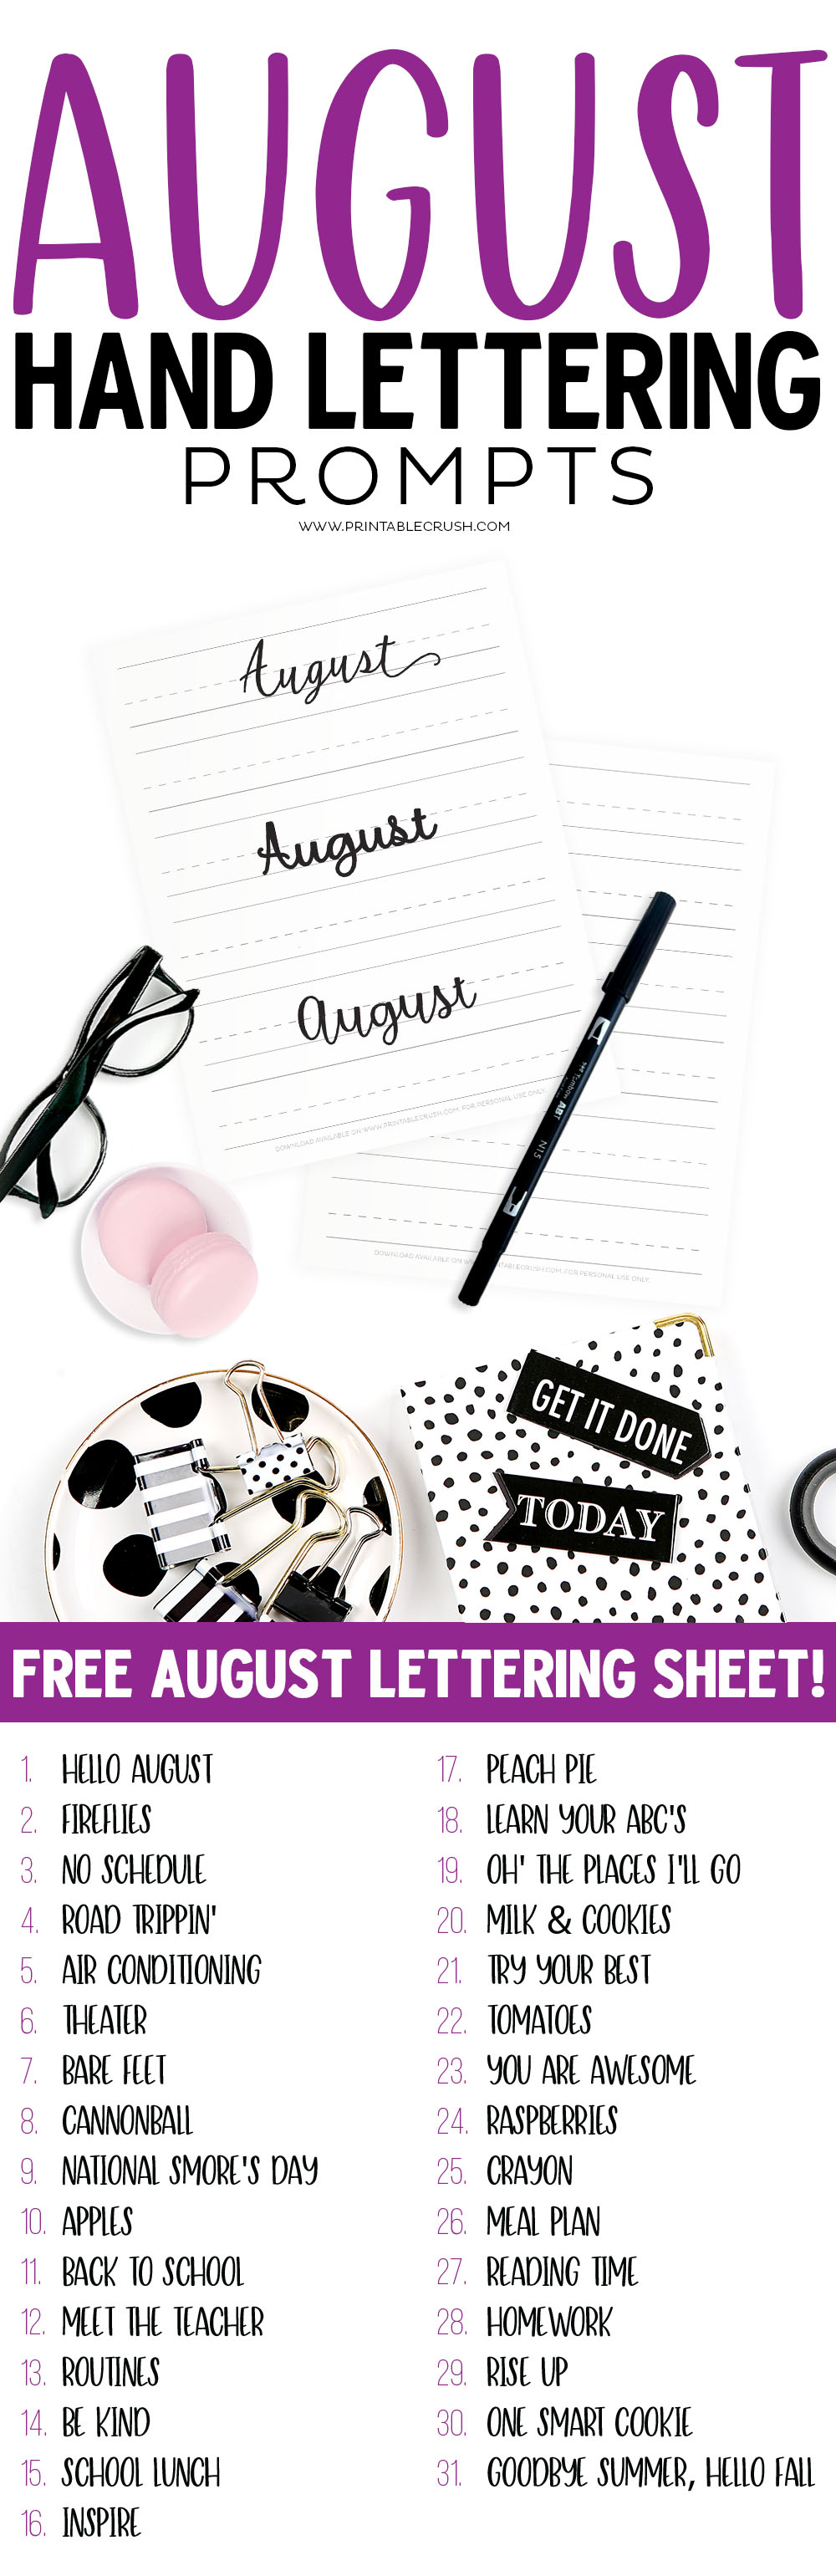 Get 31 AUGUST Hand Lettering Prompts plus a FREE practice sheet in this blog series to improve yourhand lettering skills. #handlettering #tombowpro